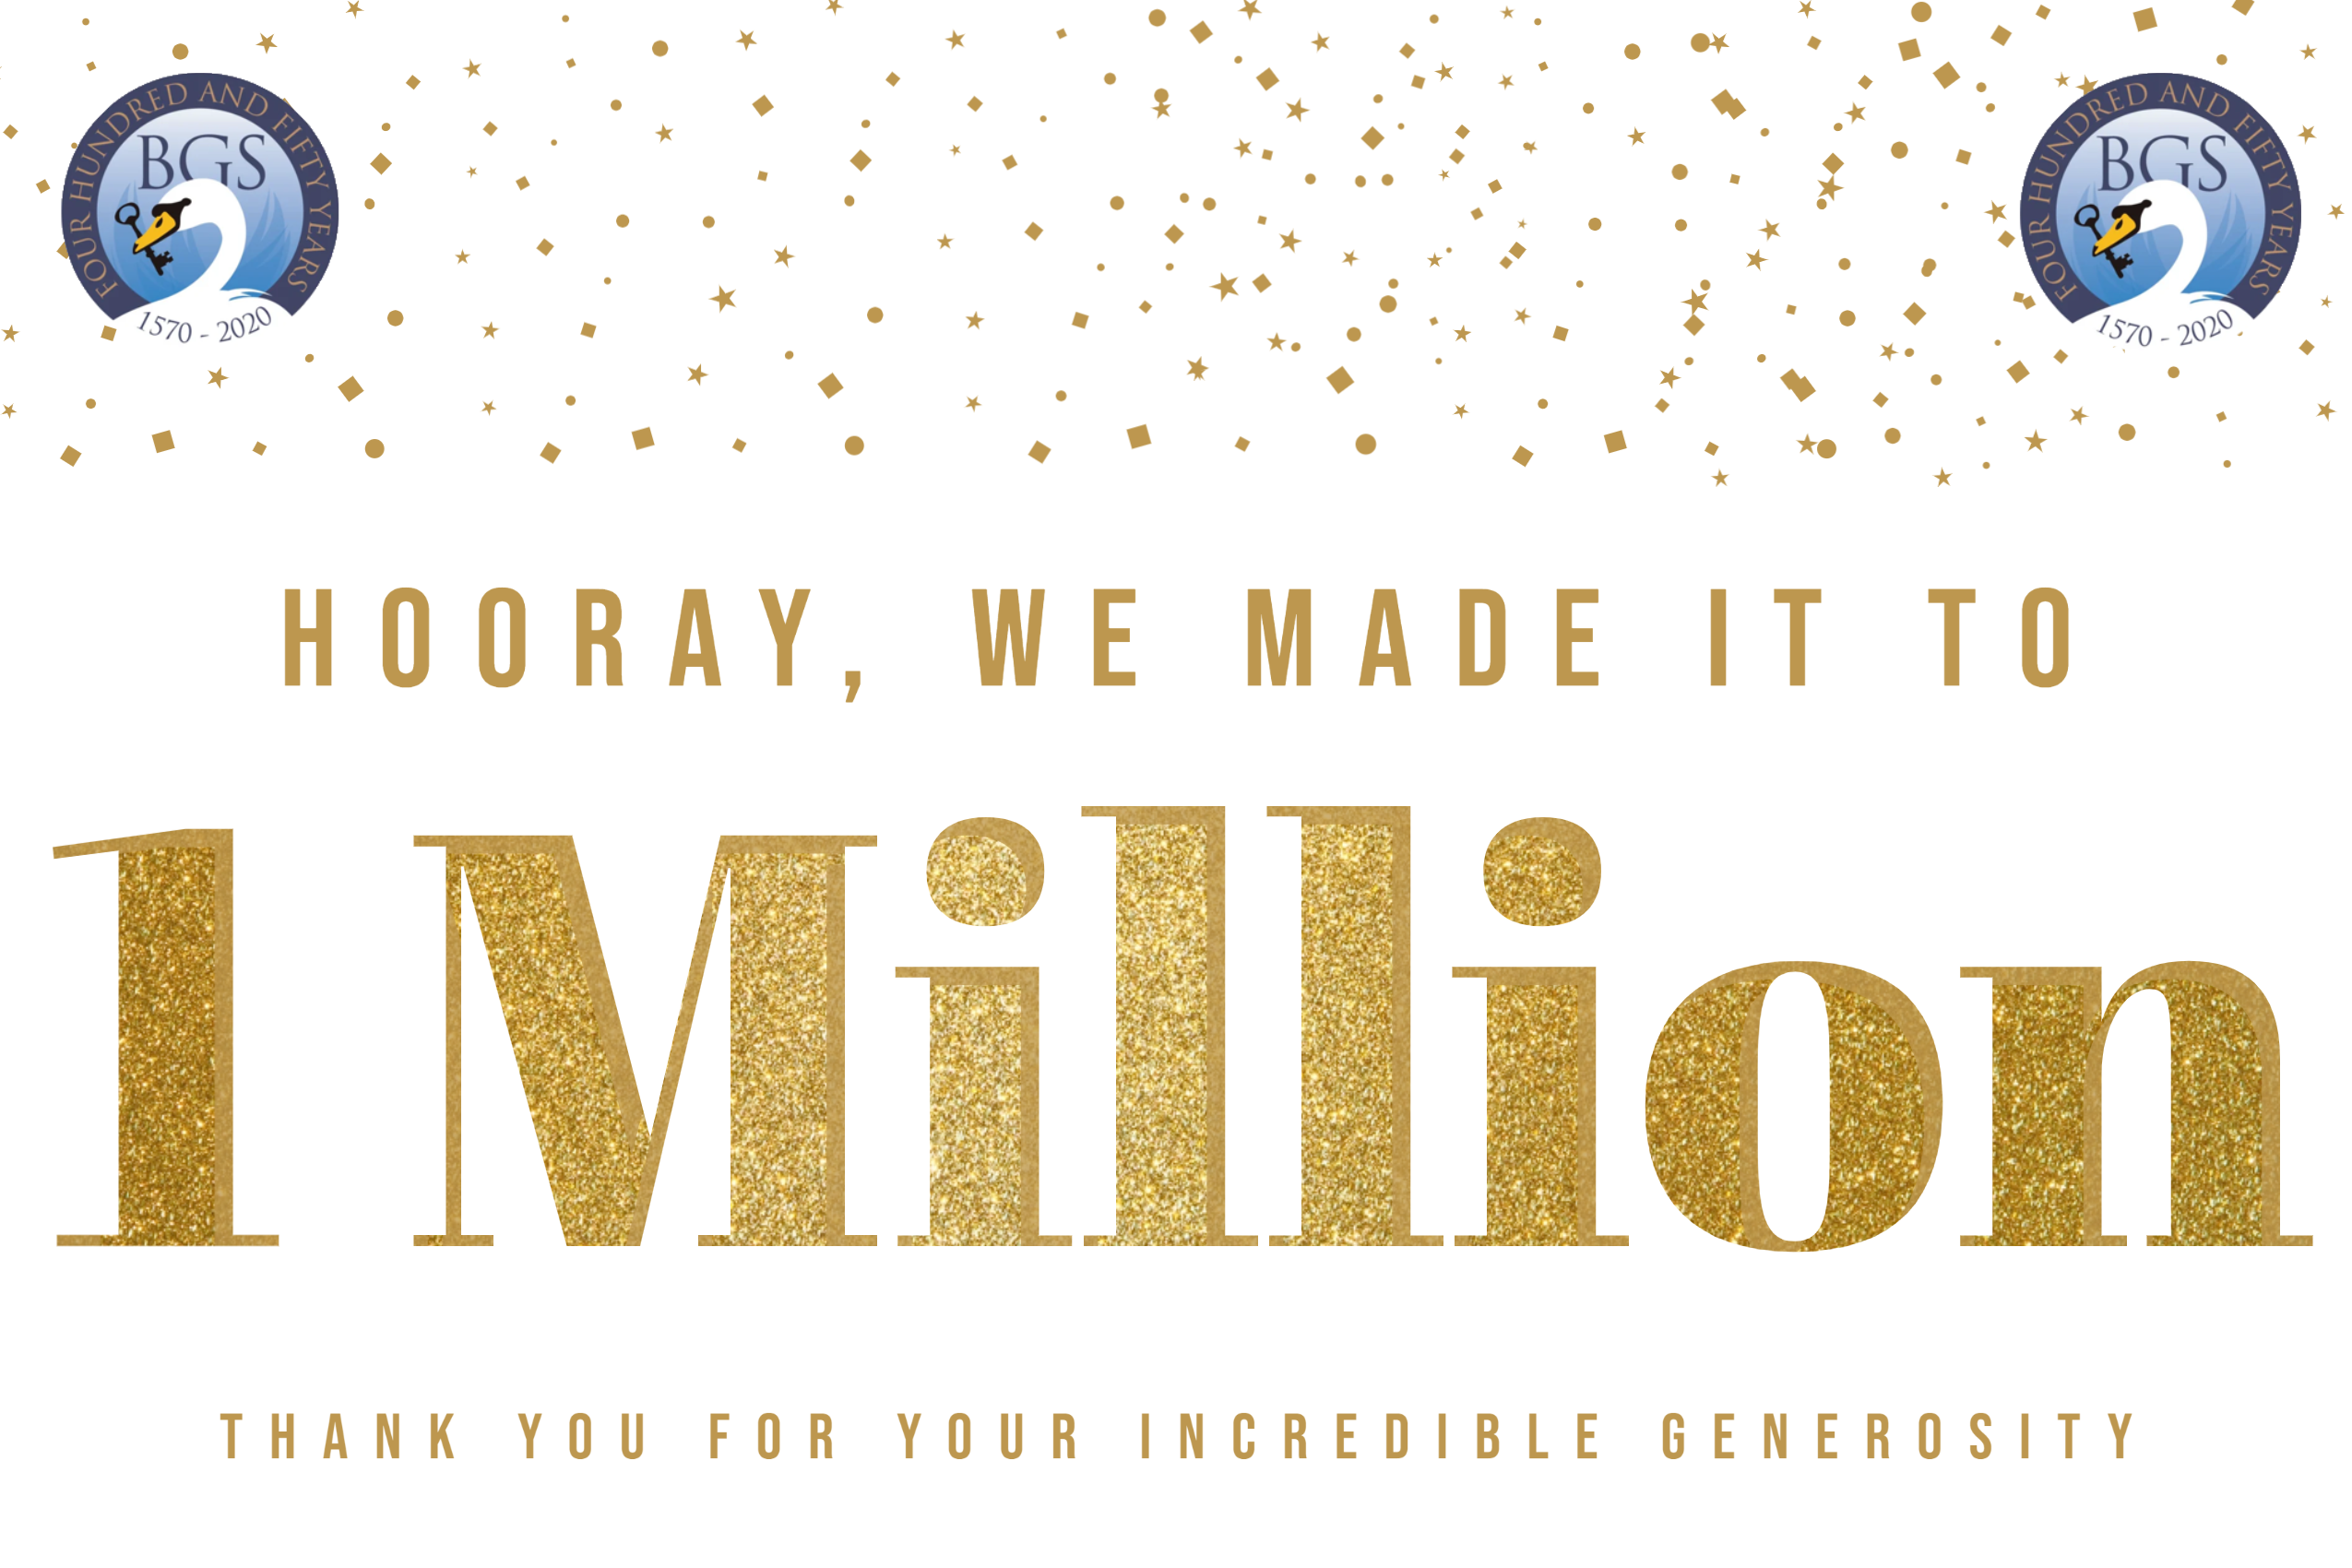 We made it to £1 million - thank you!